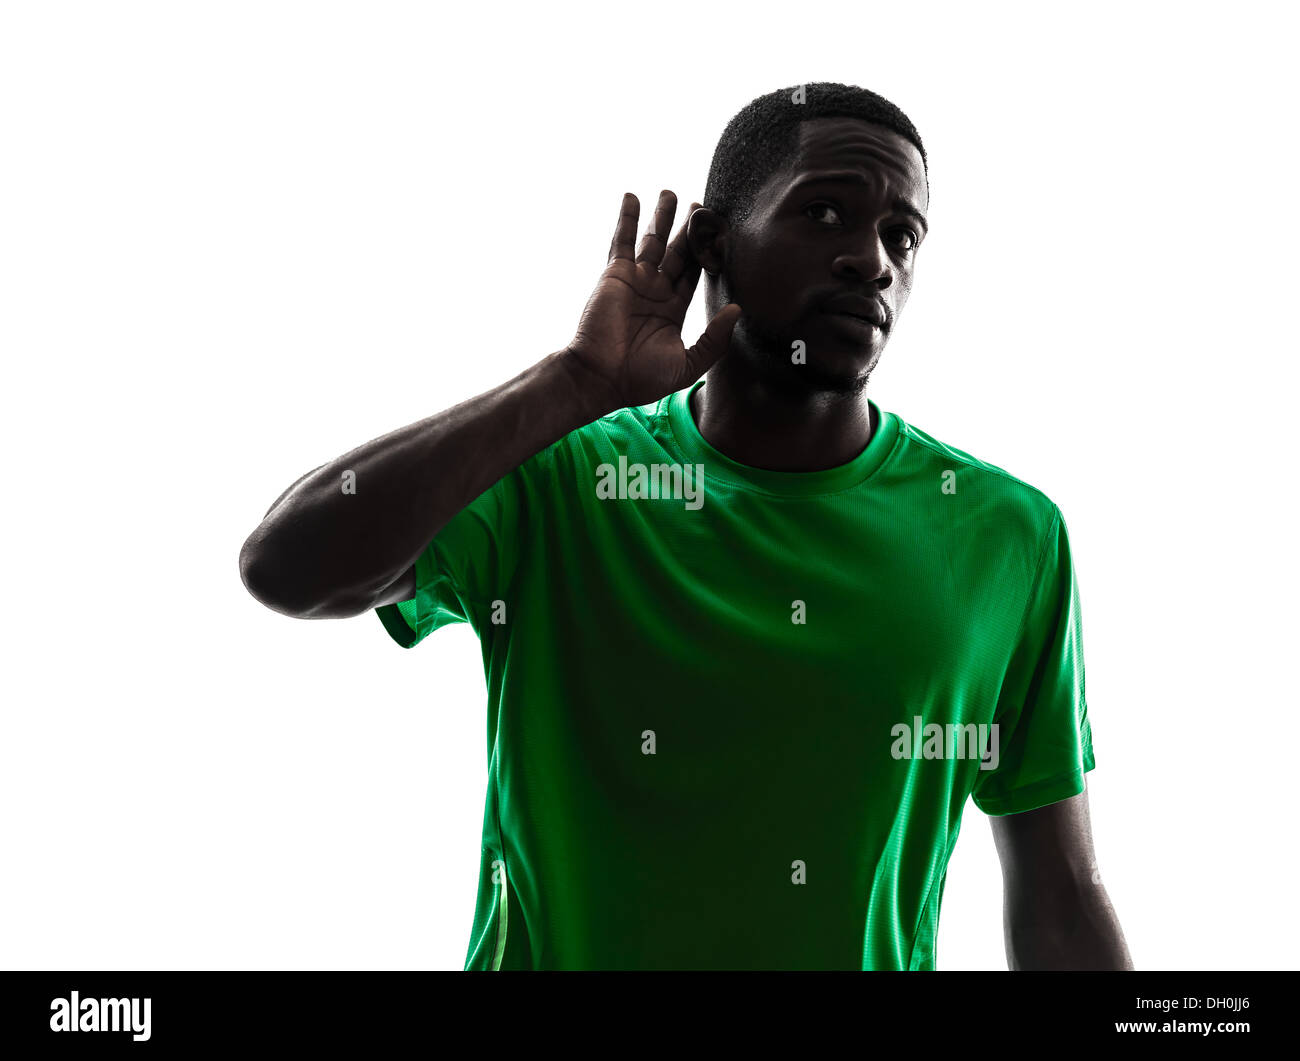 one african man soccer player green jersey hearing gesture in silhouette on white background - Stock Image